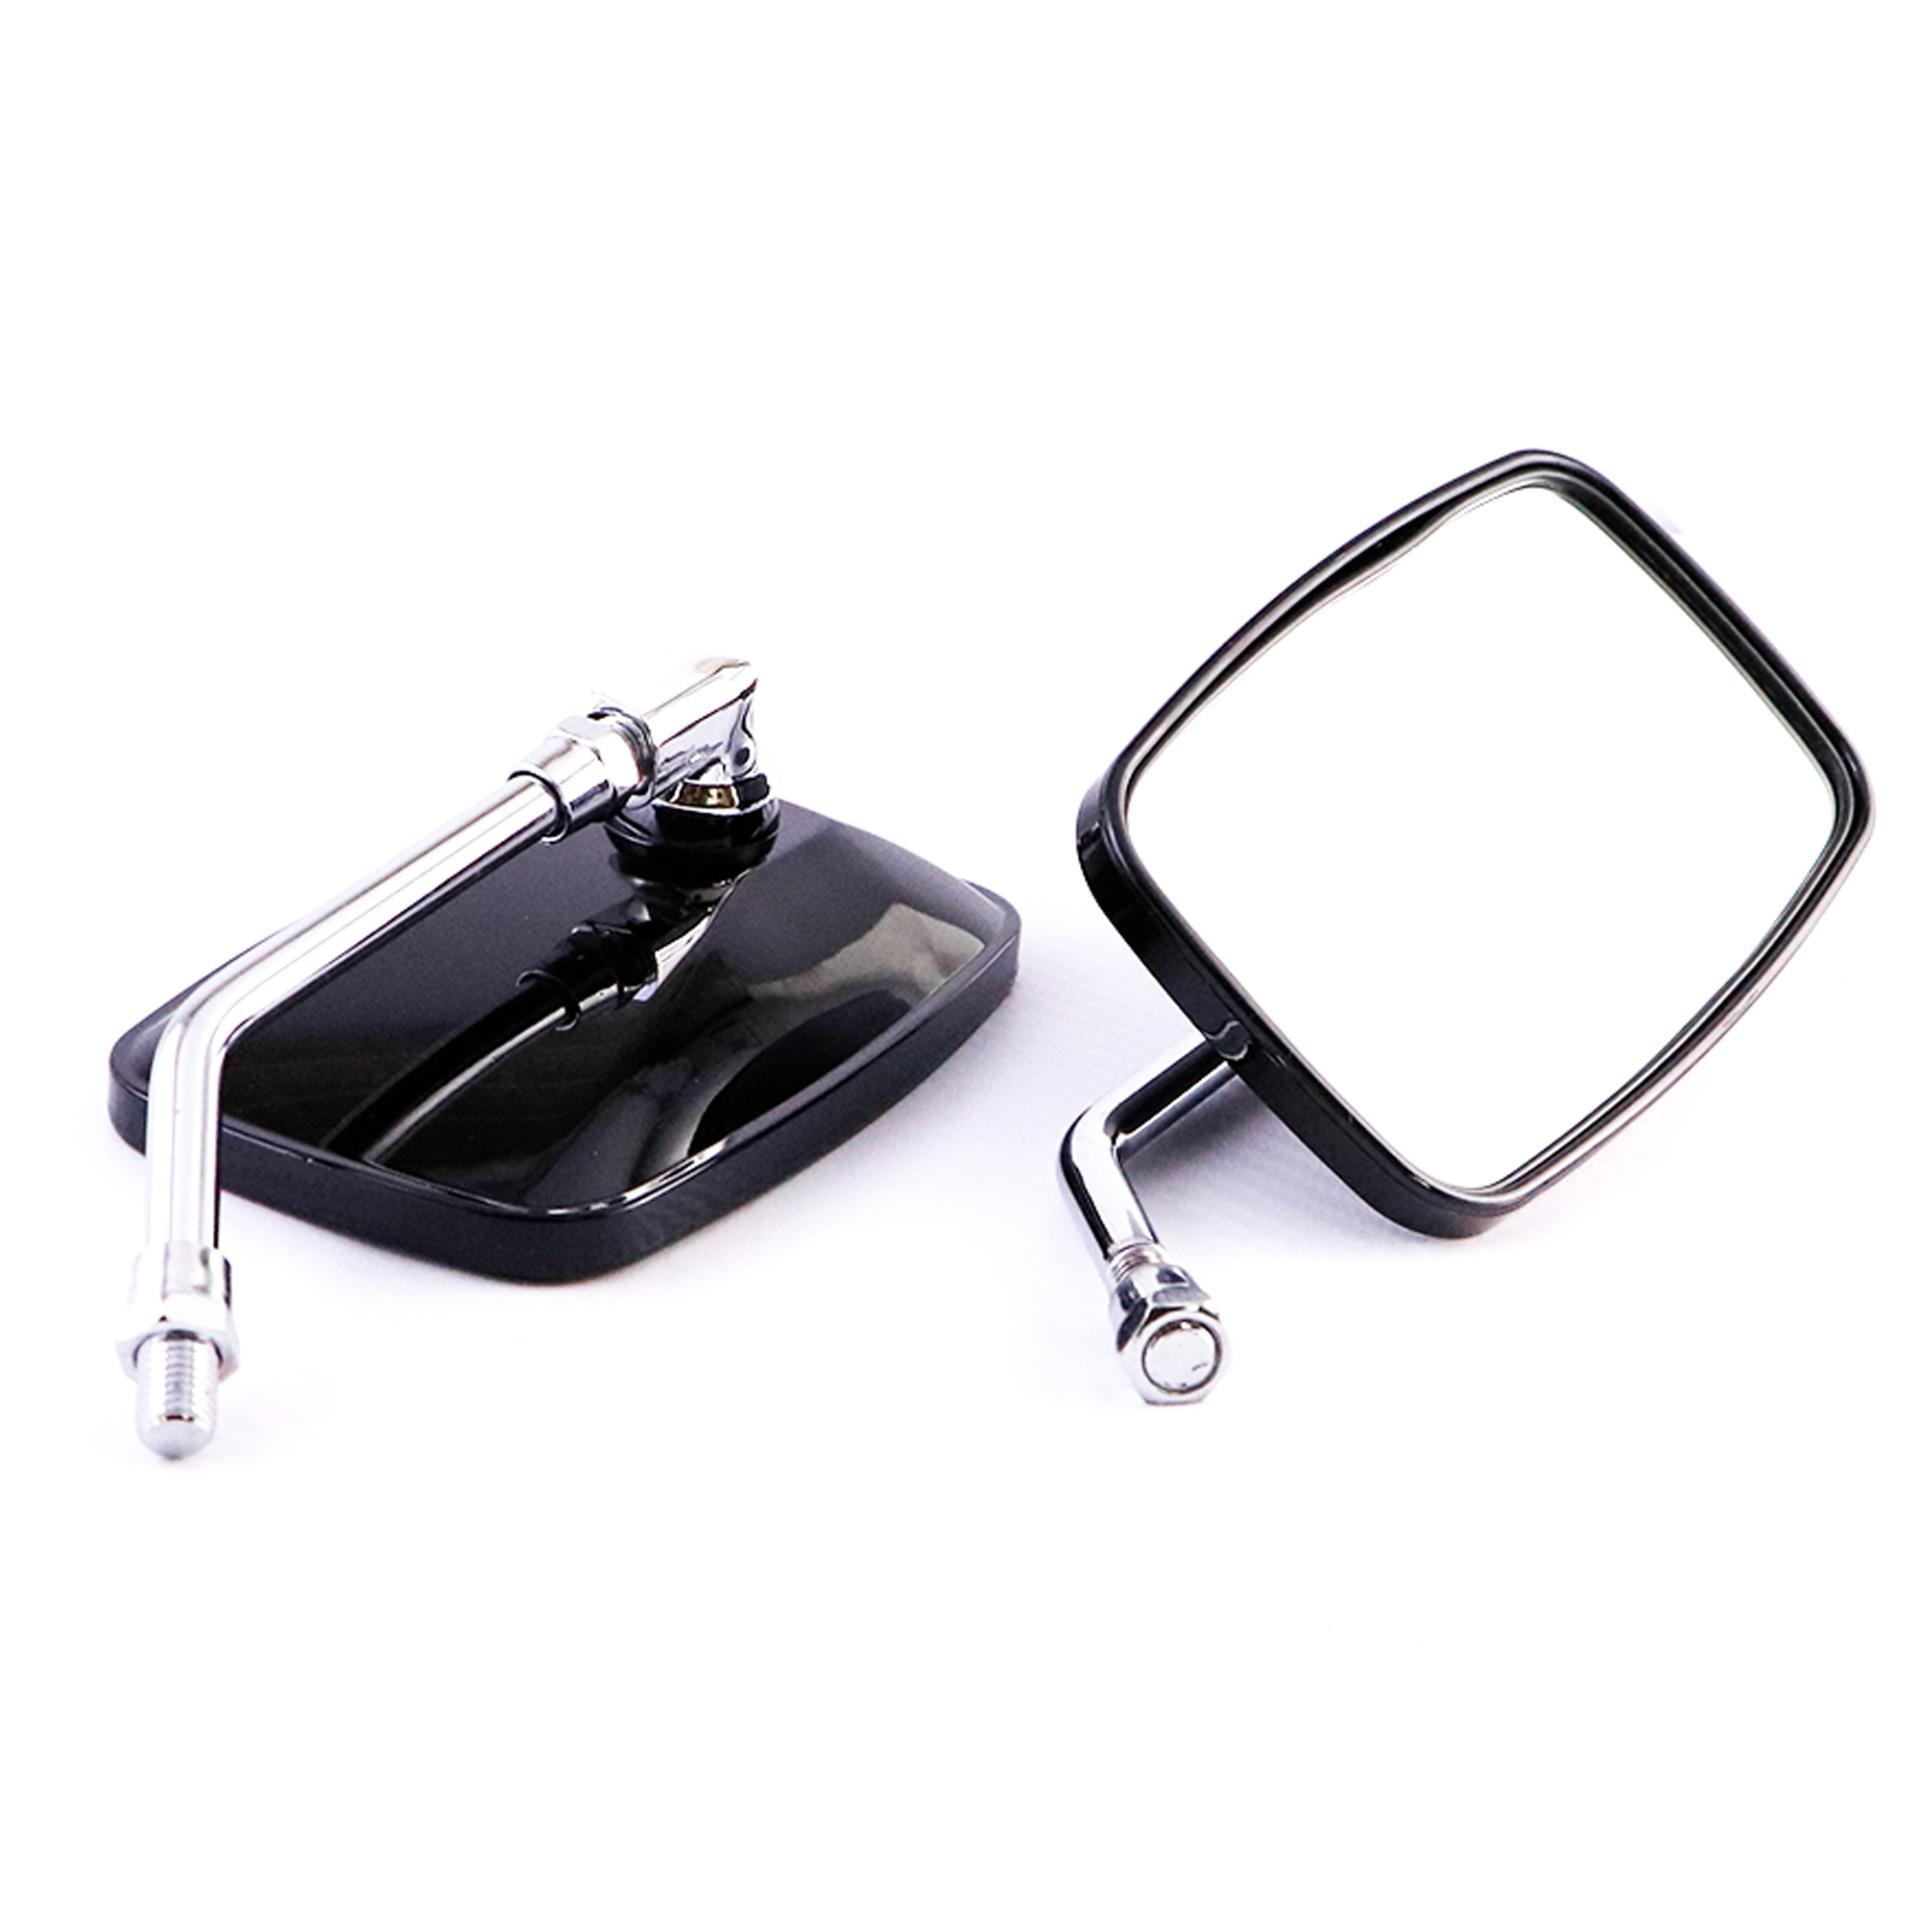 Motorcycle Mirrors For Sale Rearview Mirror Online Key Chain Cbr250r Rcv Side 5076 9702 099 Black